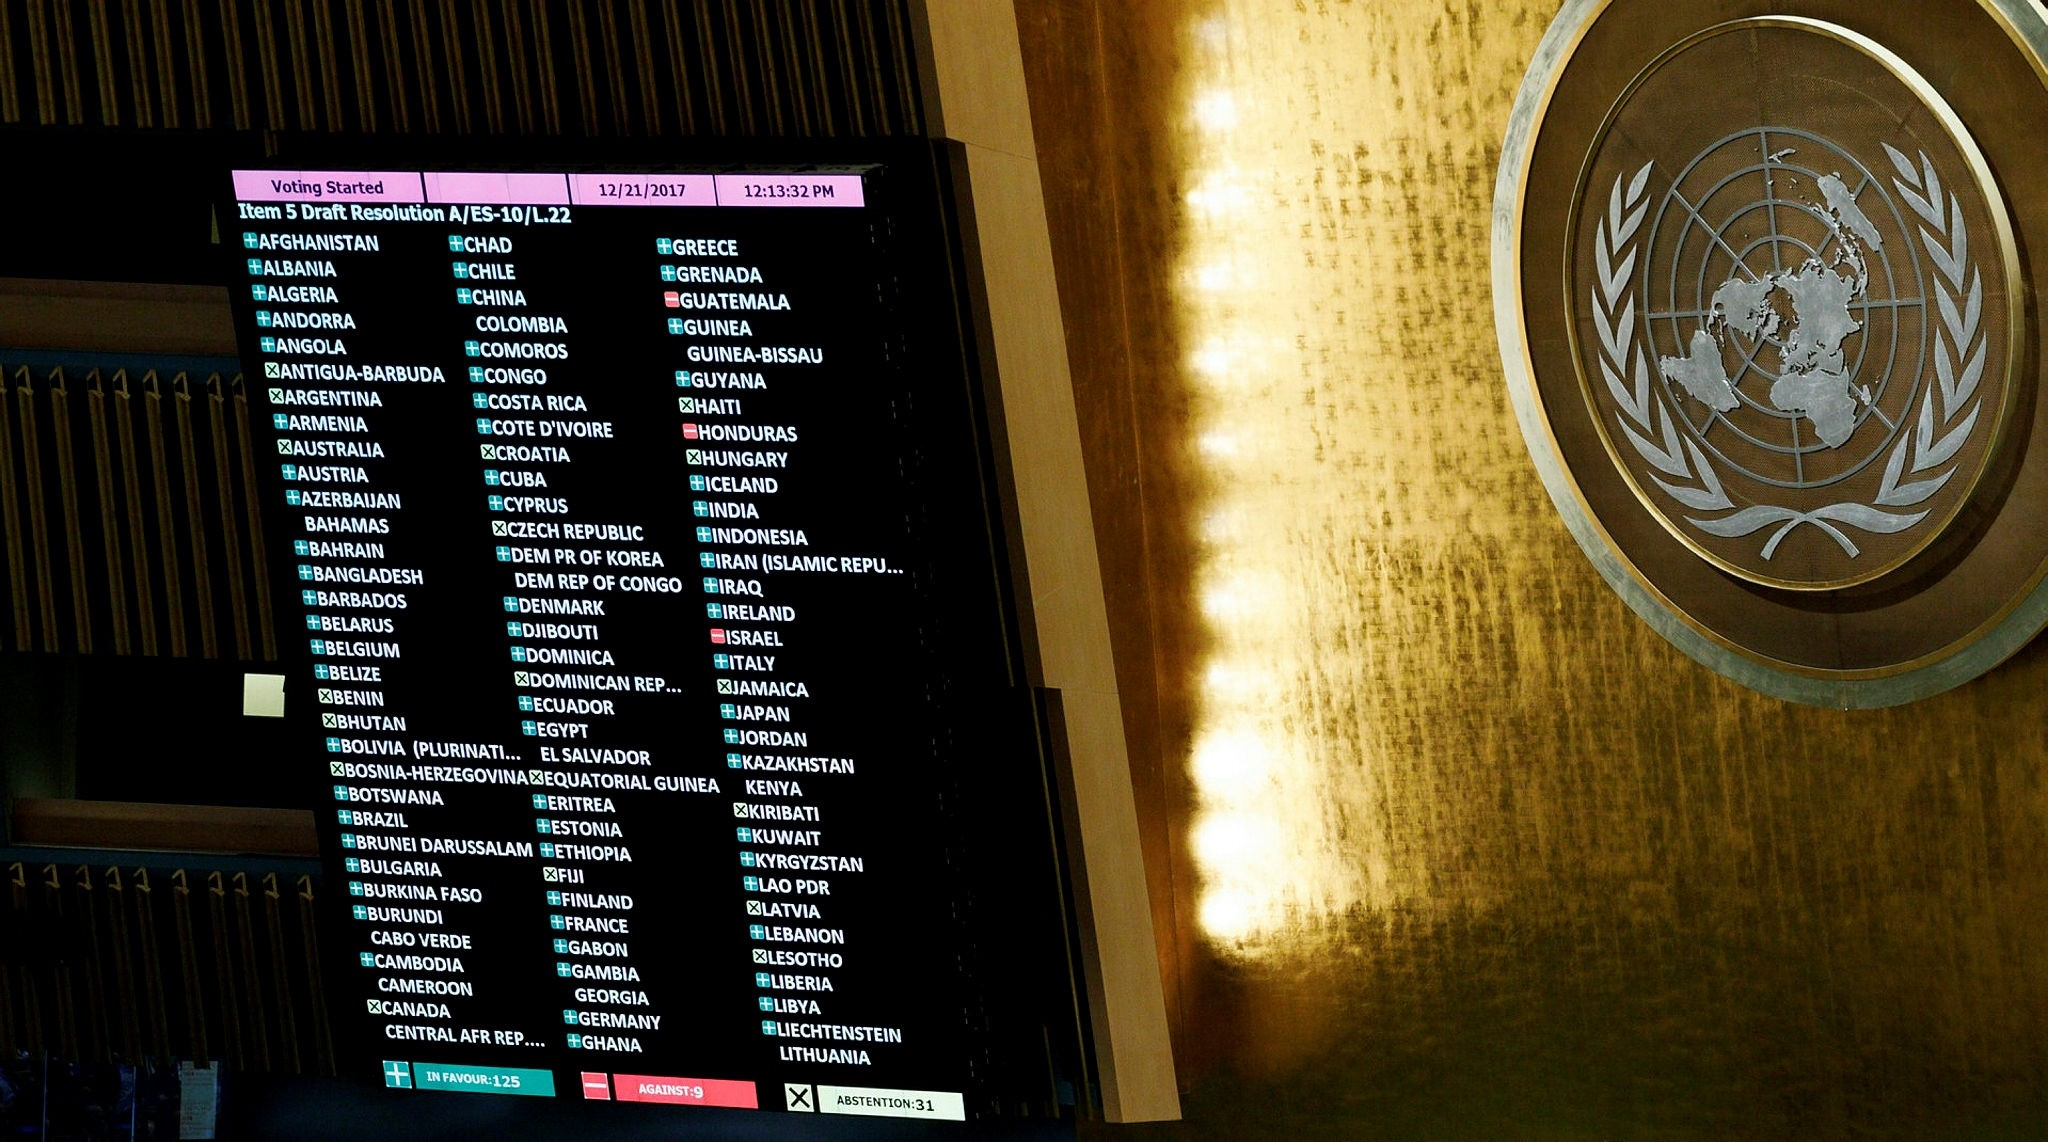 Screens showing results are seen during an UNGA emergency special session at UN headquarters in New York, New York, USA, 21 December 2017. (EPA Photo)